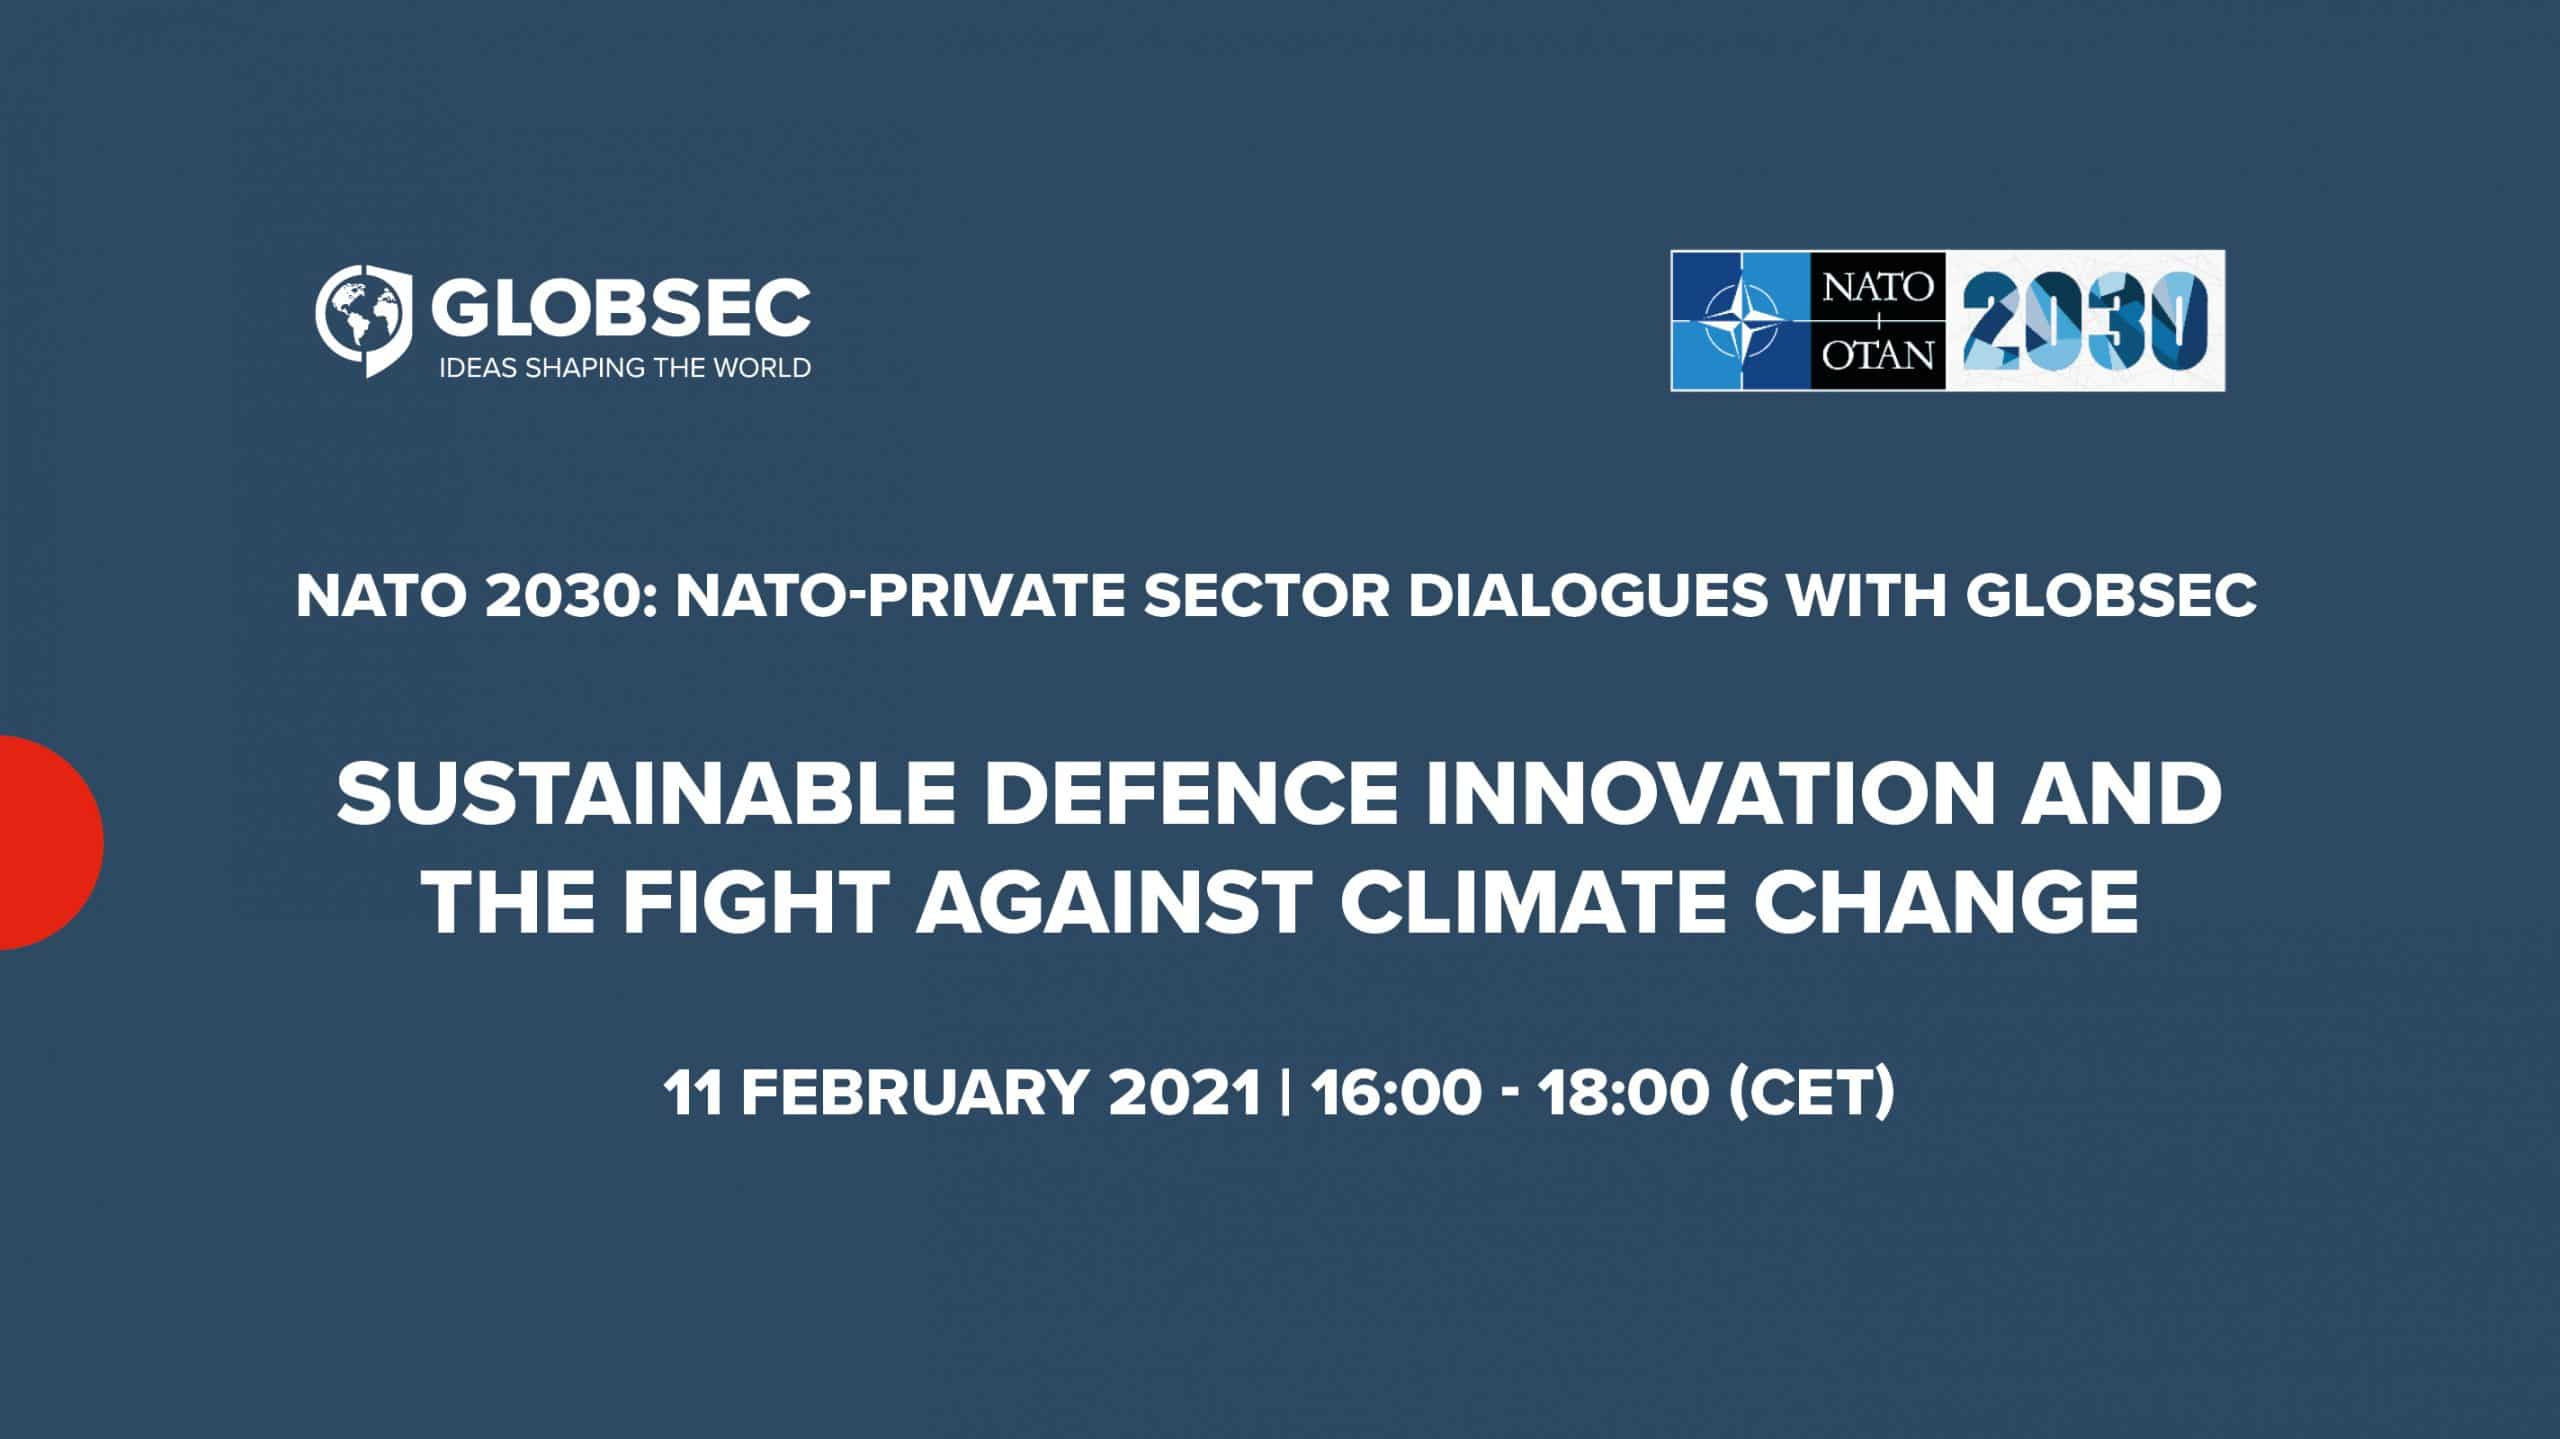 Sustainable Defence Innovation and the Fight Against Climate Change